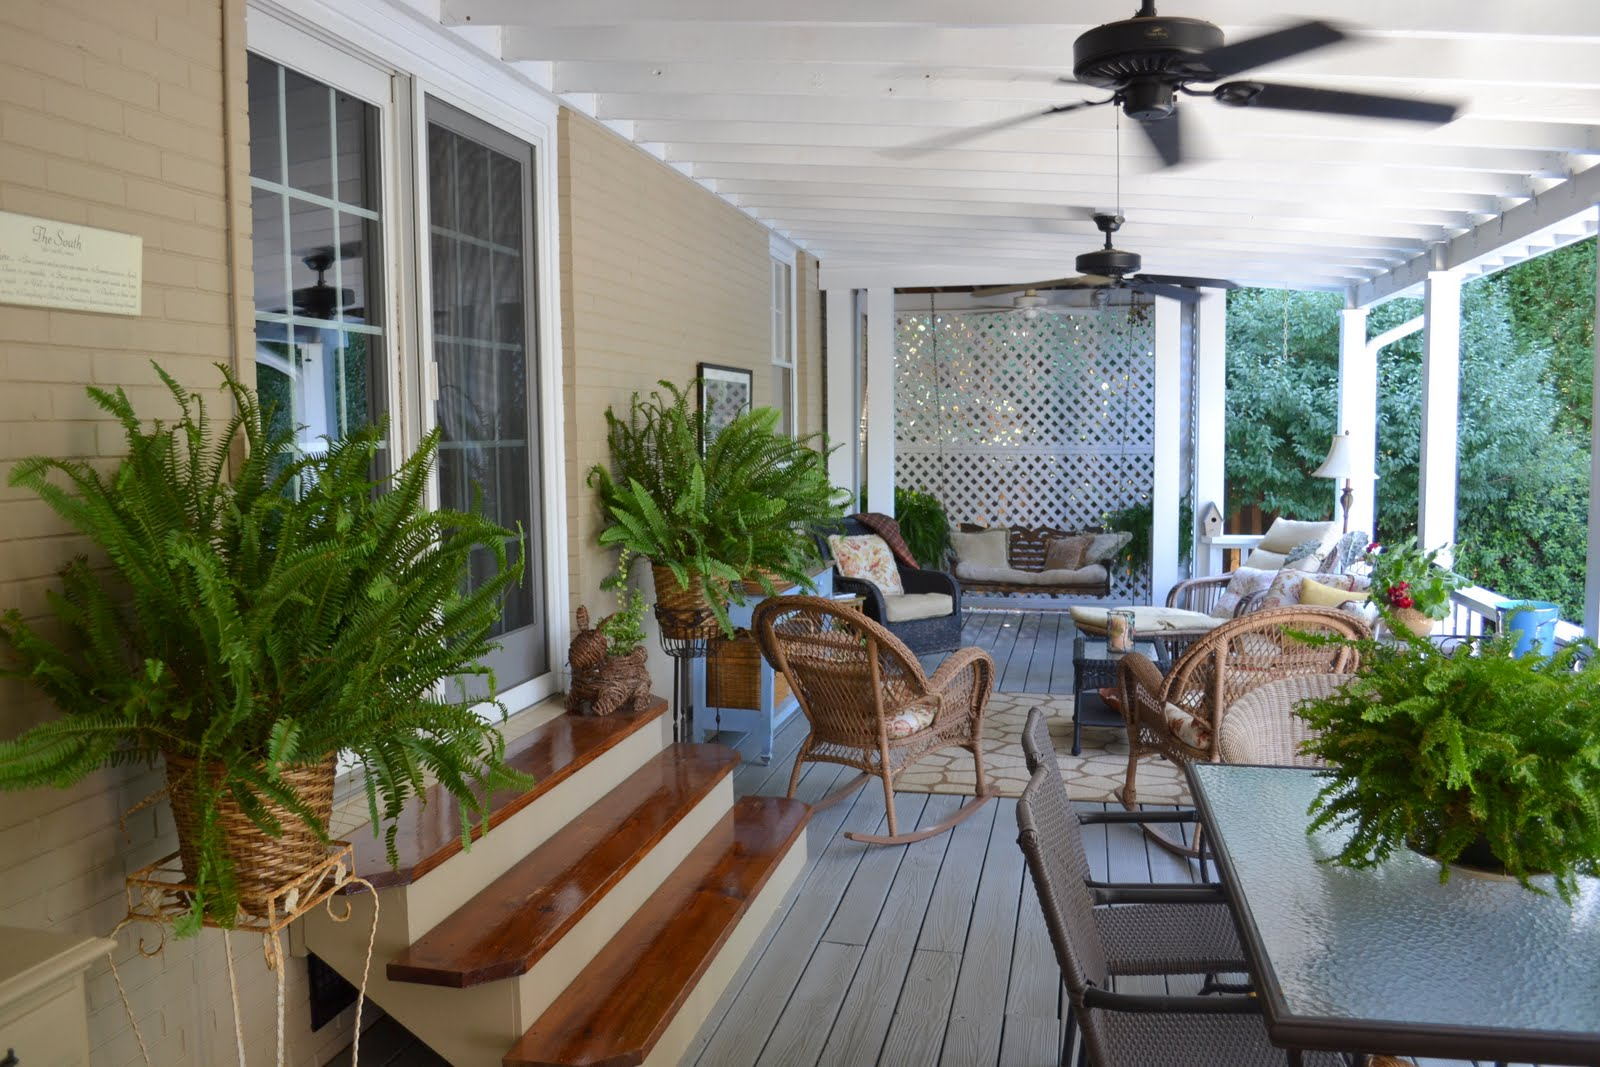 A Covered Back Porch Filled With Vintage Goodies ... on Covered Back Deck Ideas id=46105